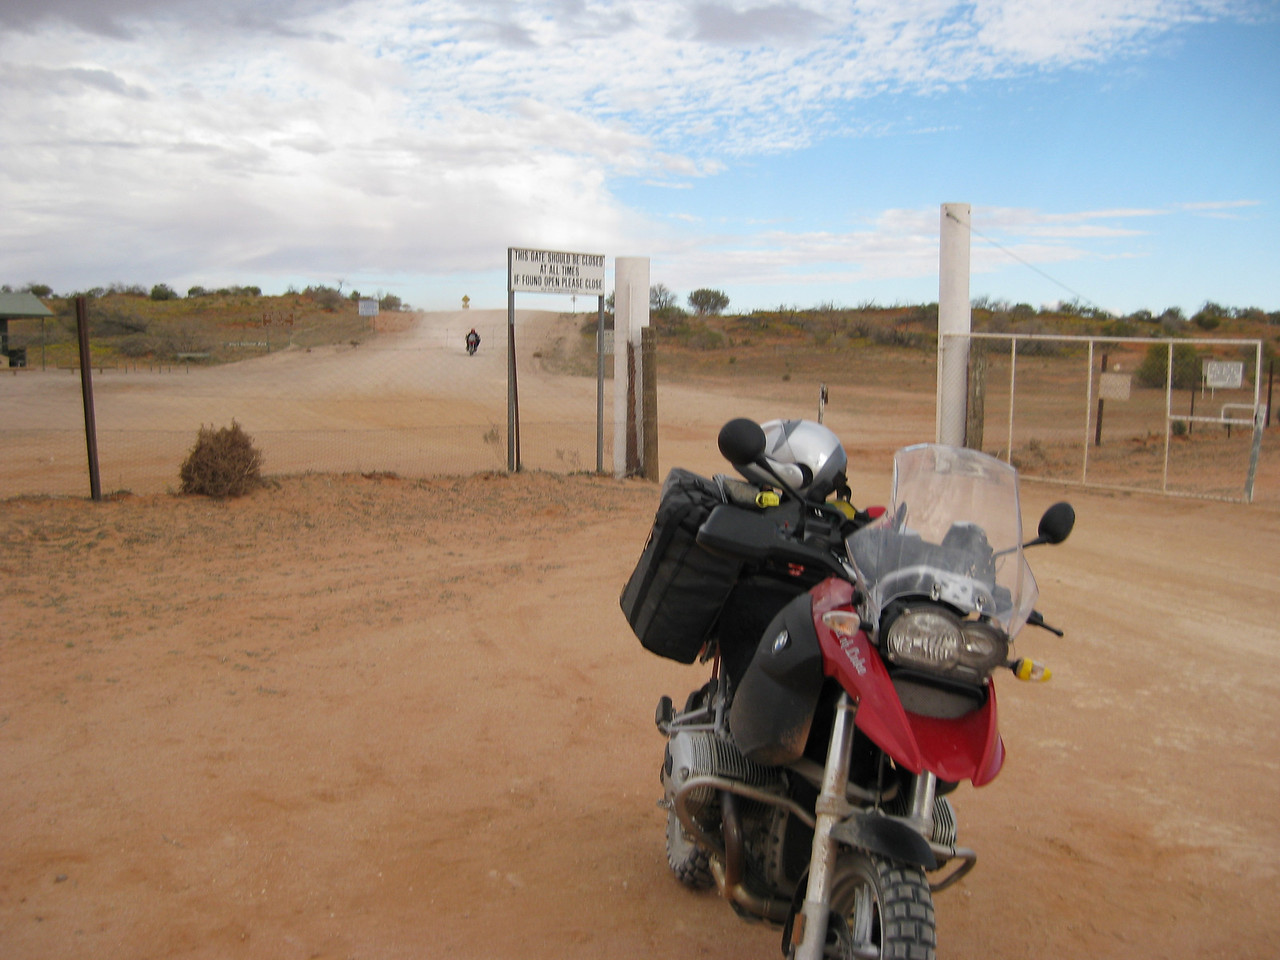 Waiting for the rest of the guys while stopping the wild dogs from getting through the gate.